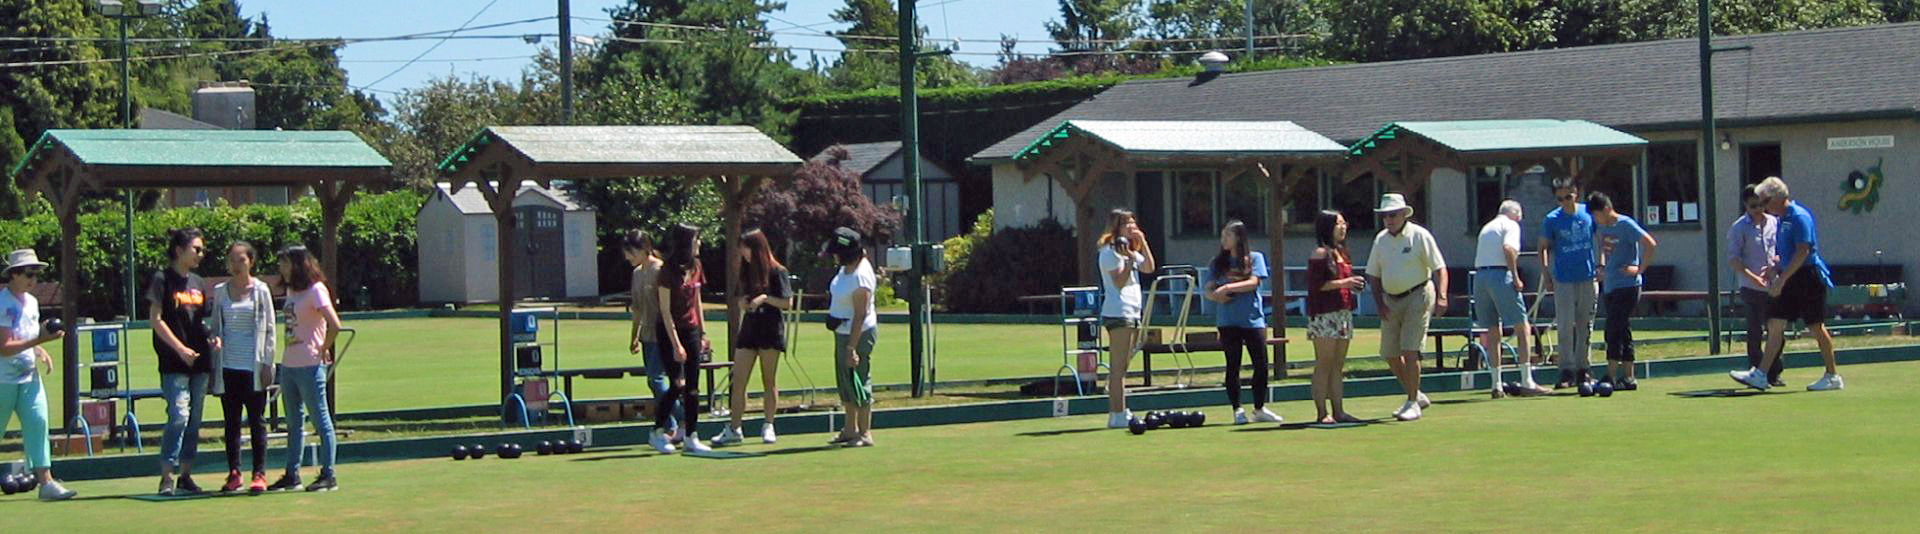 Coaching for Camosun College students at Oak Bay Lawn Bowling Club